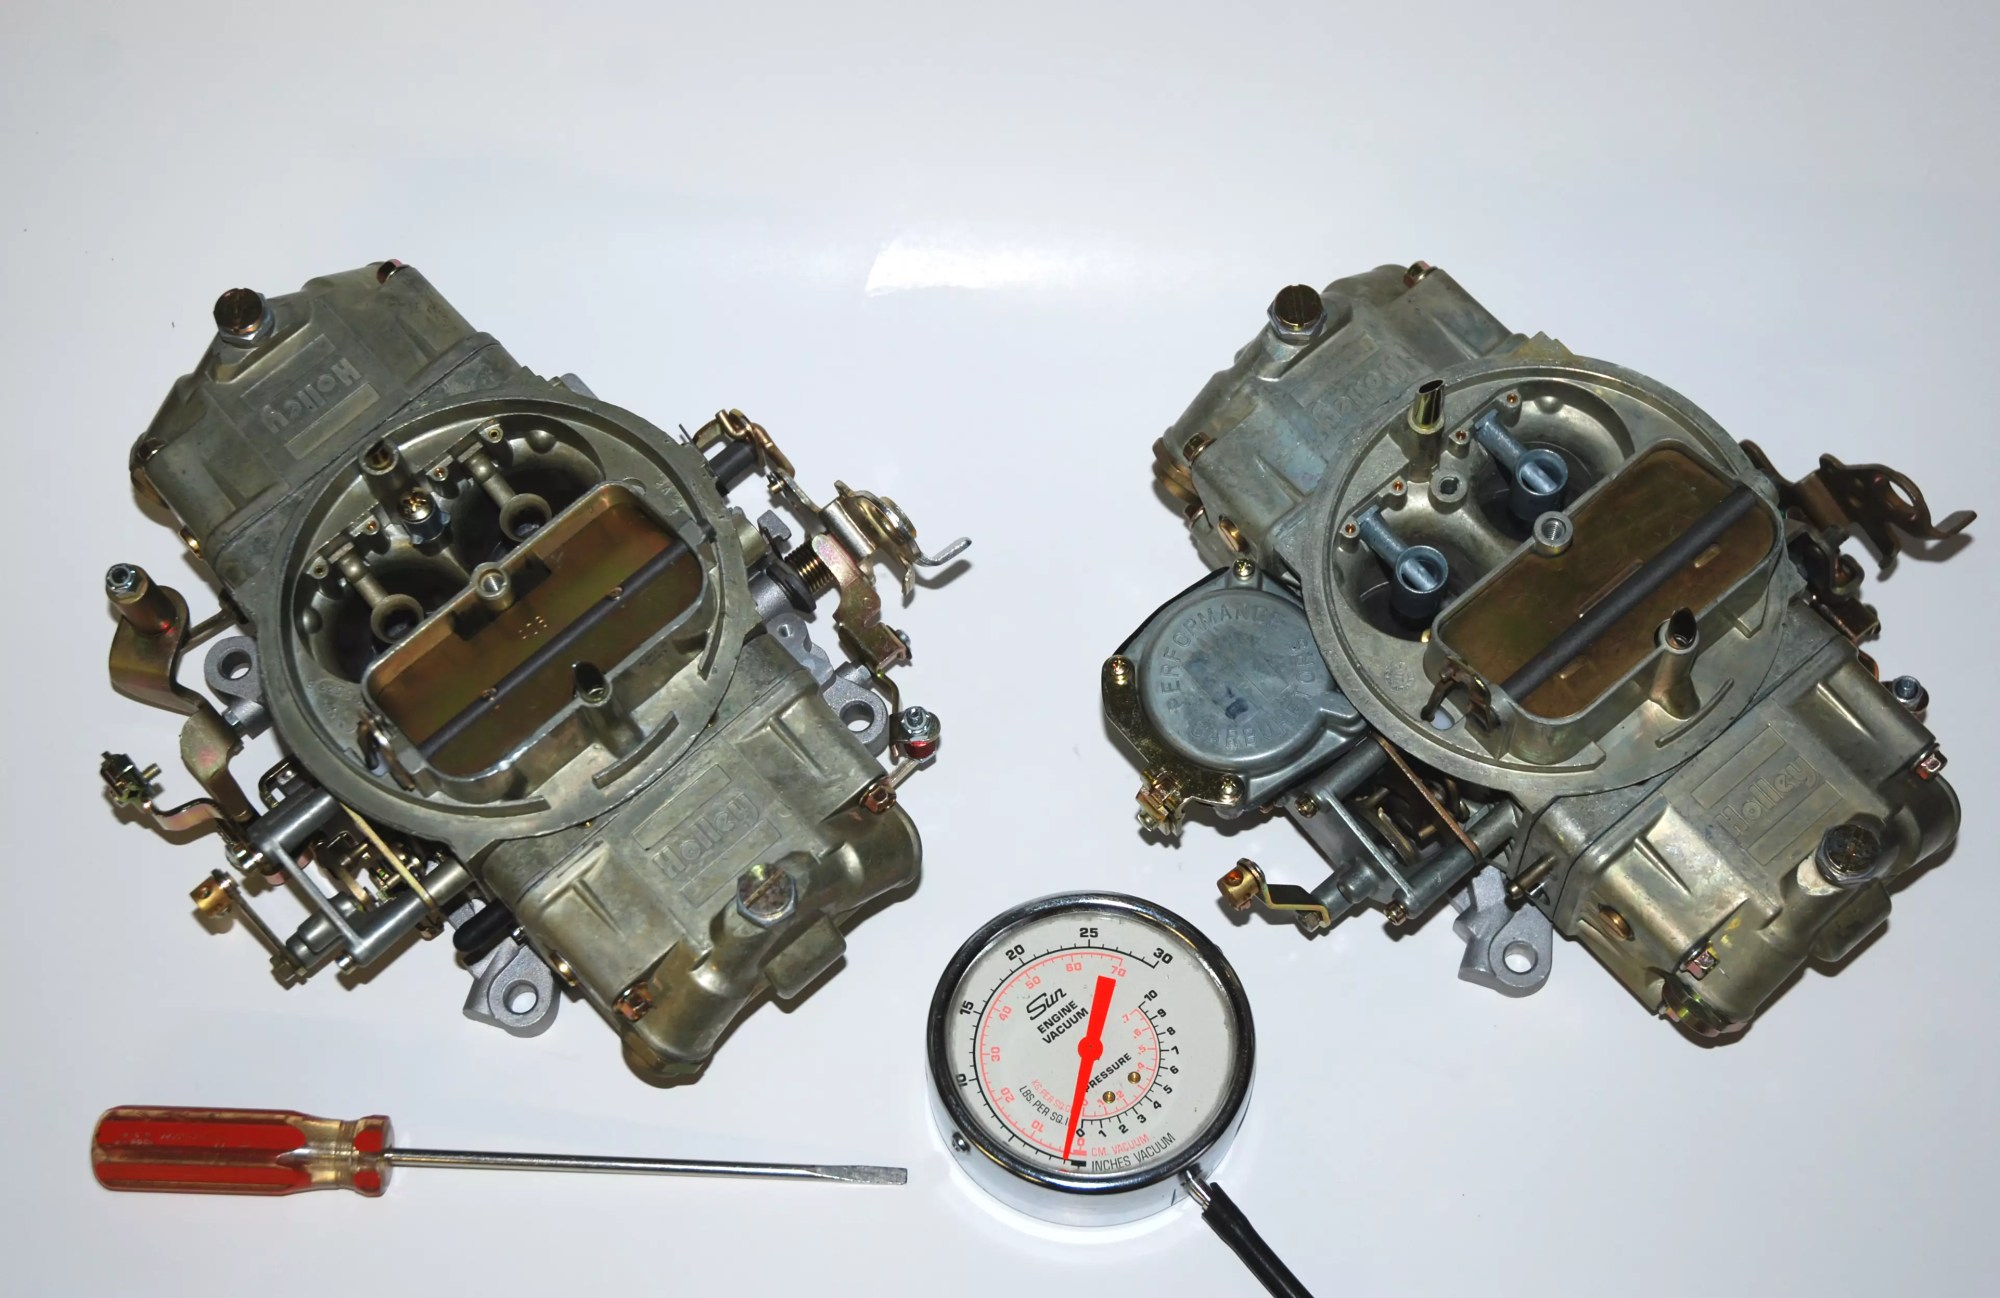 hight resolution of holley double pumper carburetors and idle tuning tools